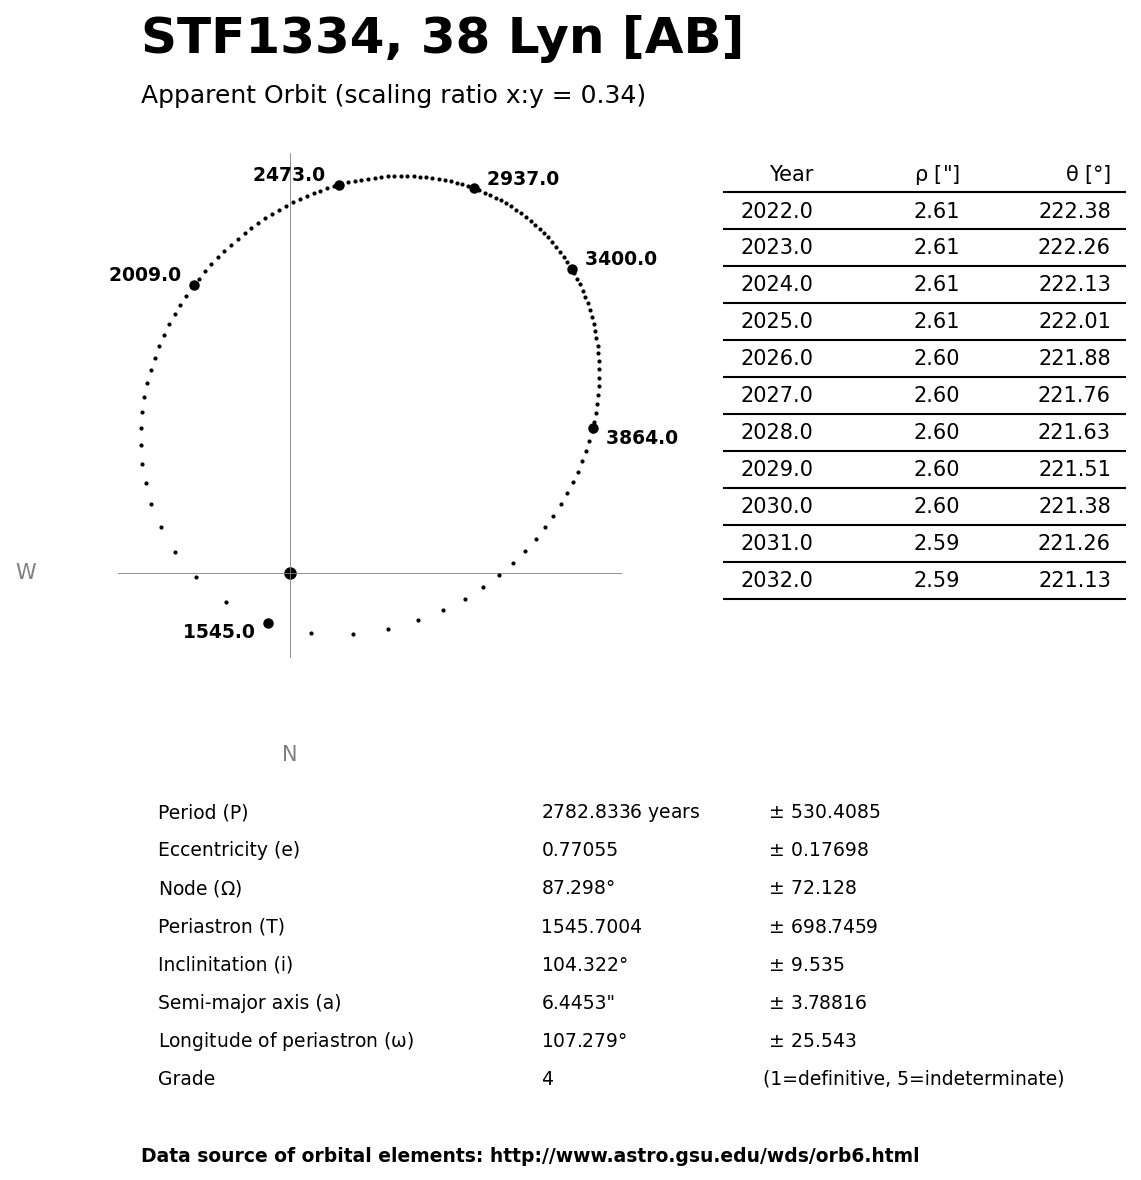 ../images/binary-star-orbits/STF1334-AB-orbit.jpg